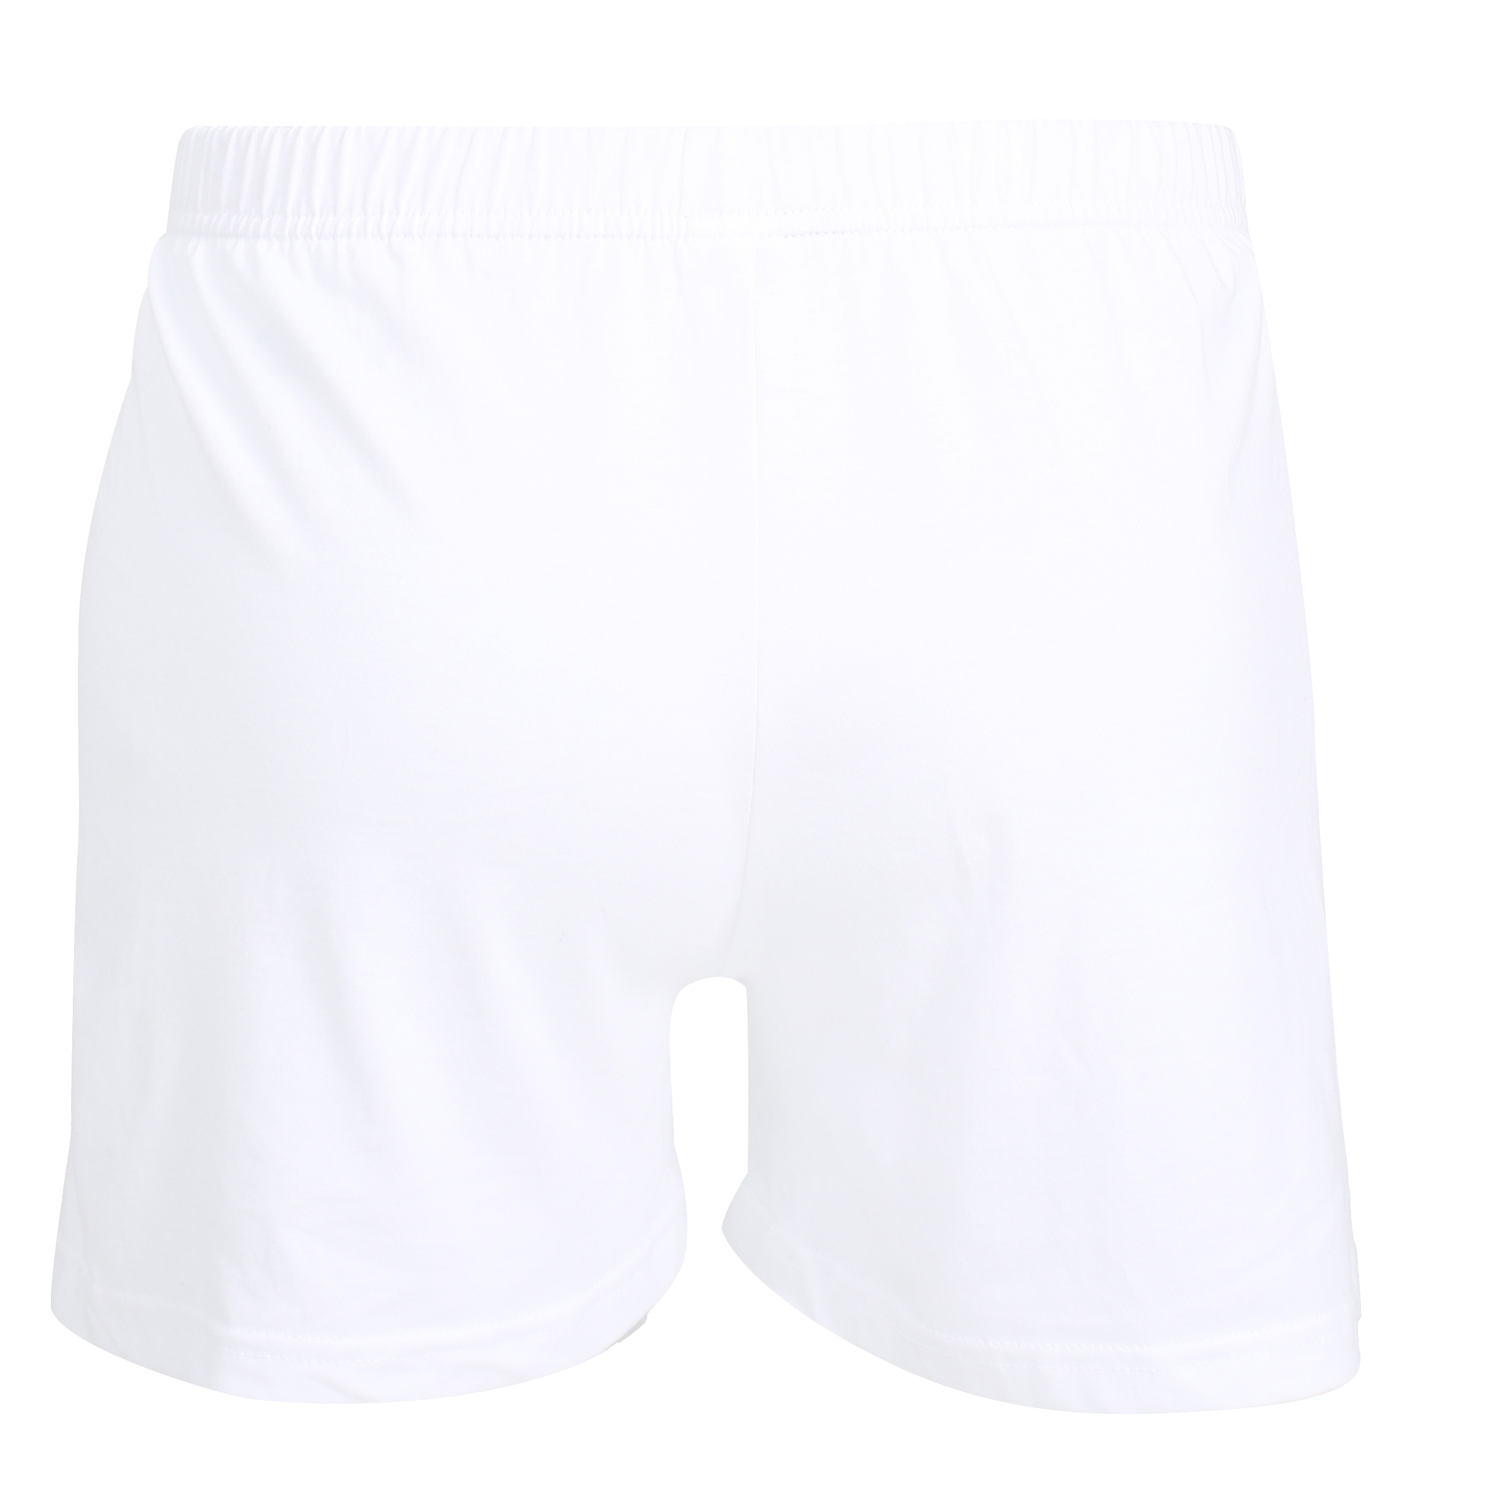 Detail Image to Boxershorts in white by Ceceba up to oversize 18- double pack